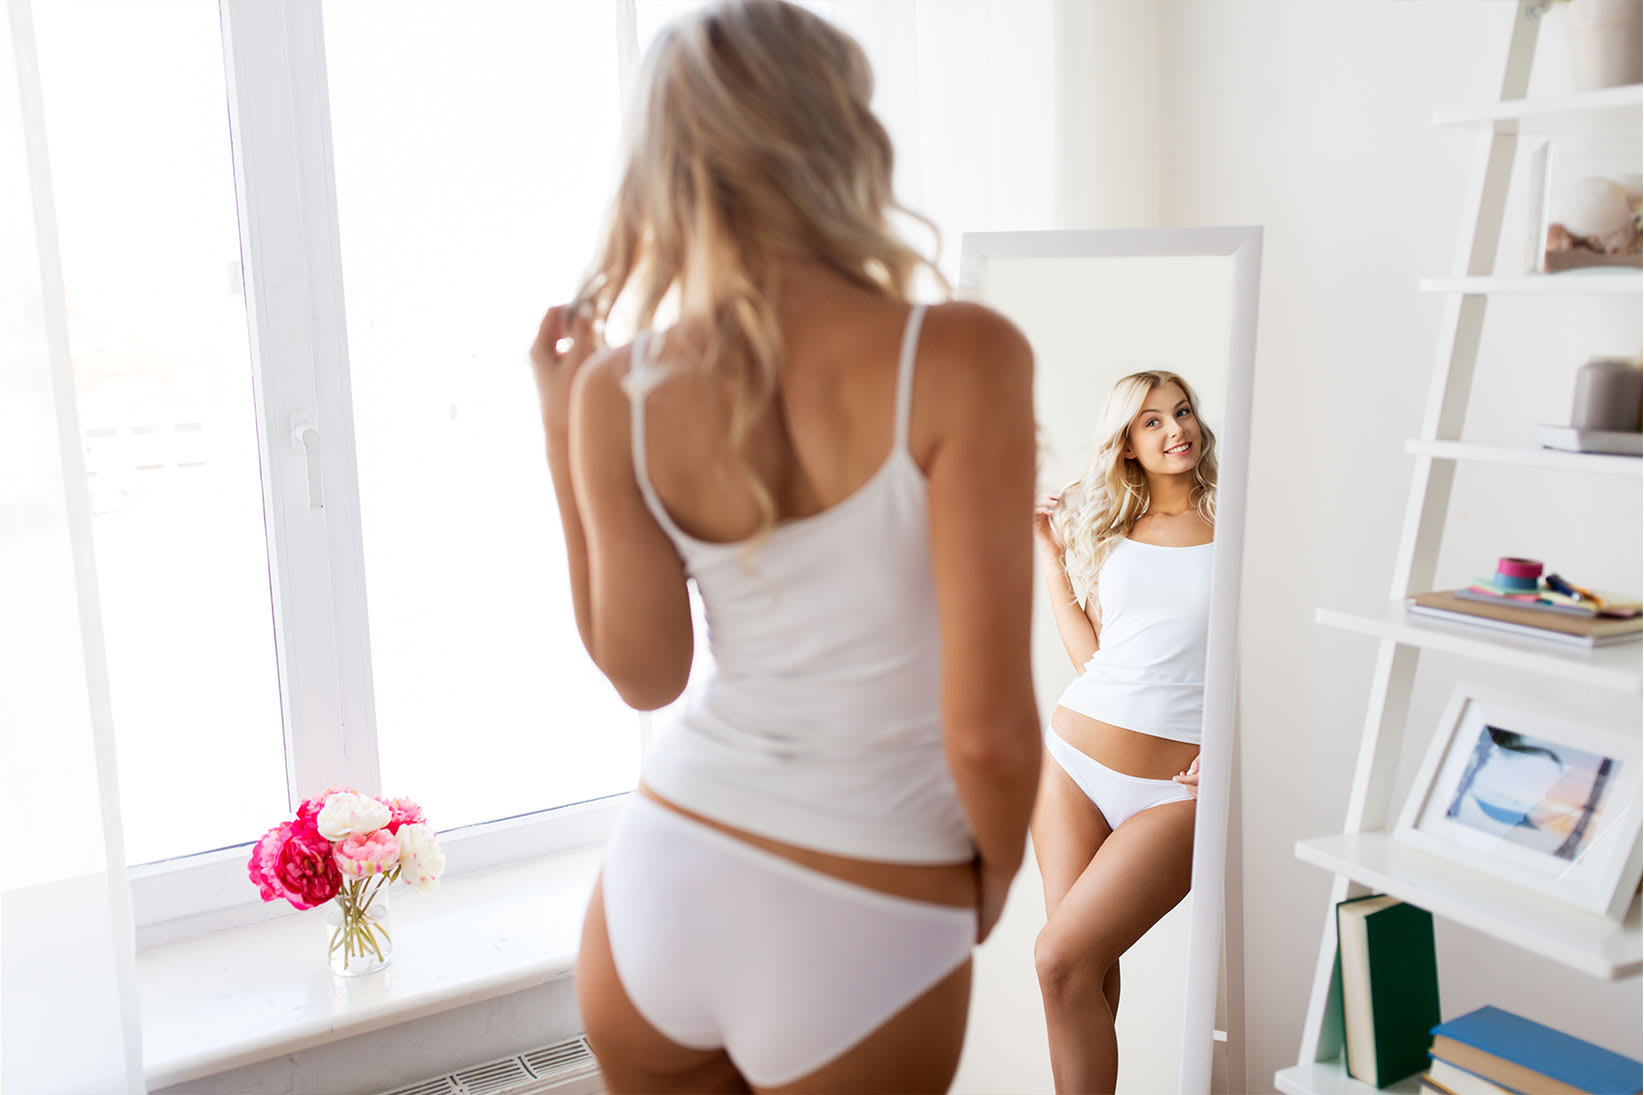 woman-in-mirror-white